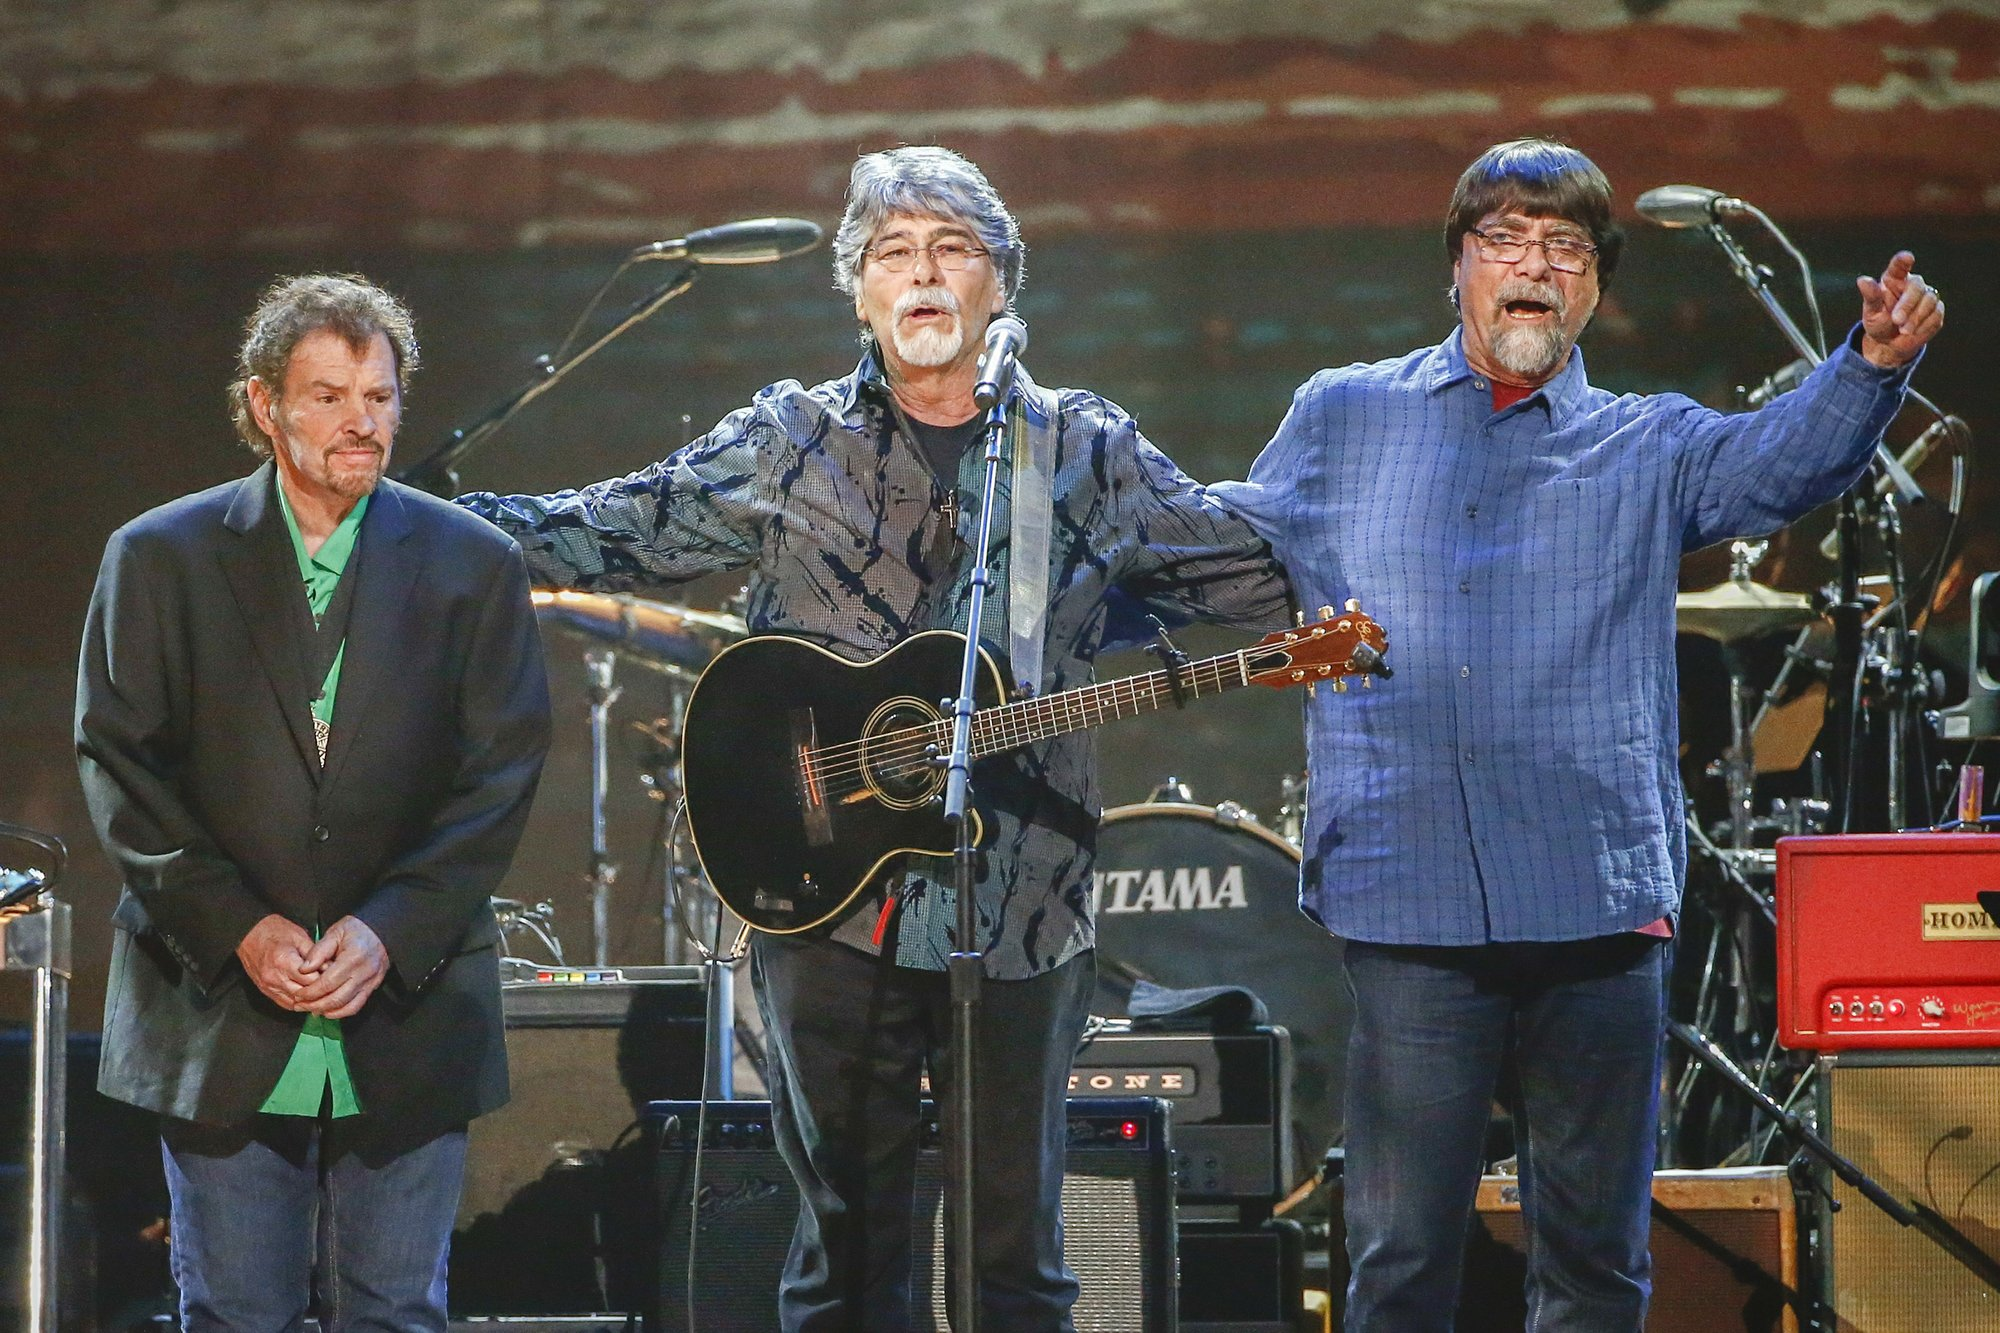 Country group Alabama extends 50th anniversary tour